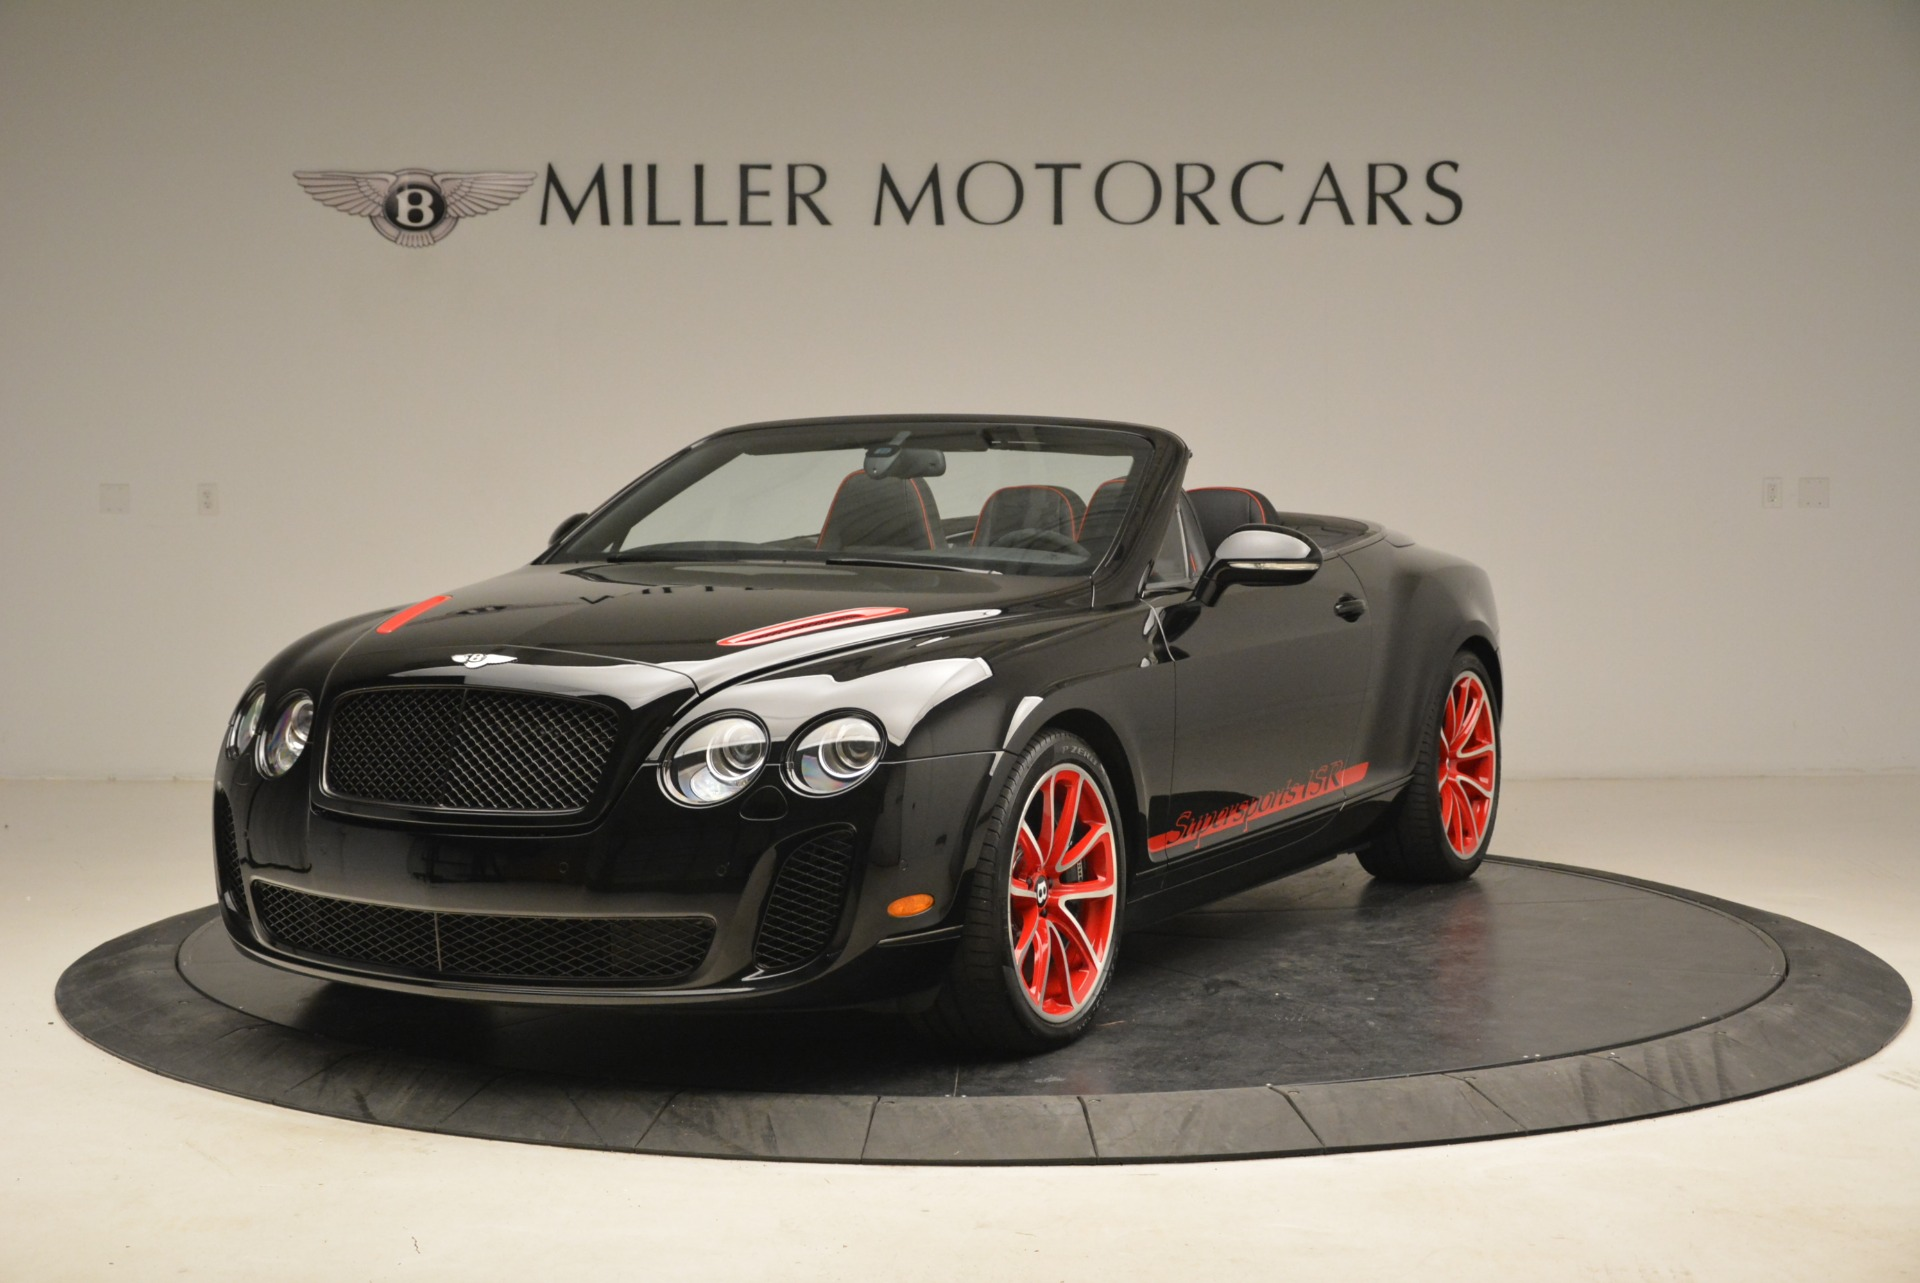 Used 2013 Bentley Continental GT Supersports Convertible ISR for sale Sold at Alfa Romeo of Greenwich in Greenwich CT 06830 1